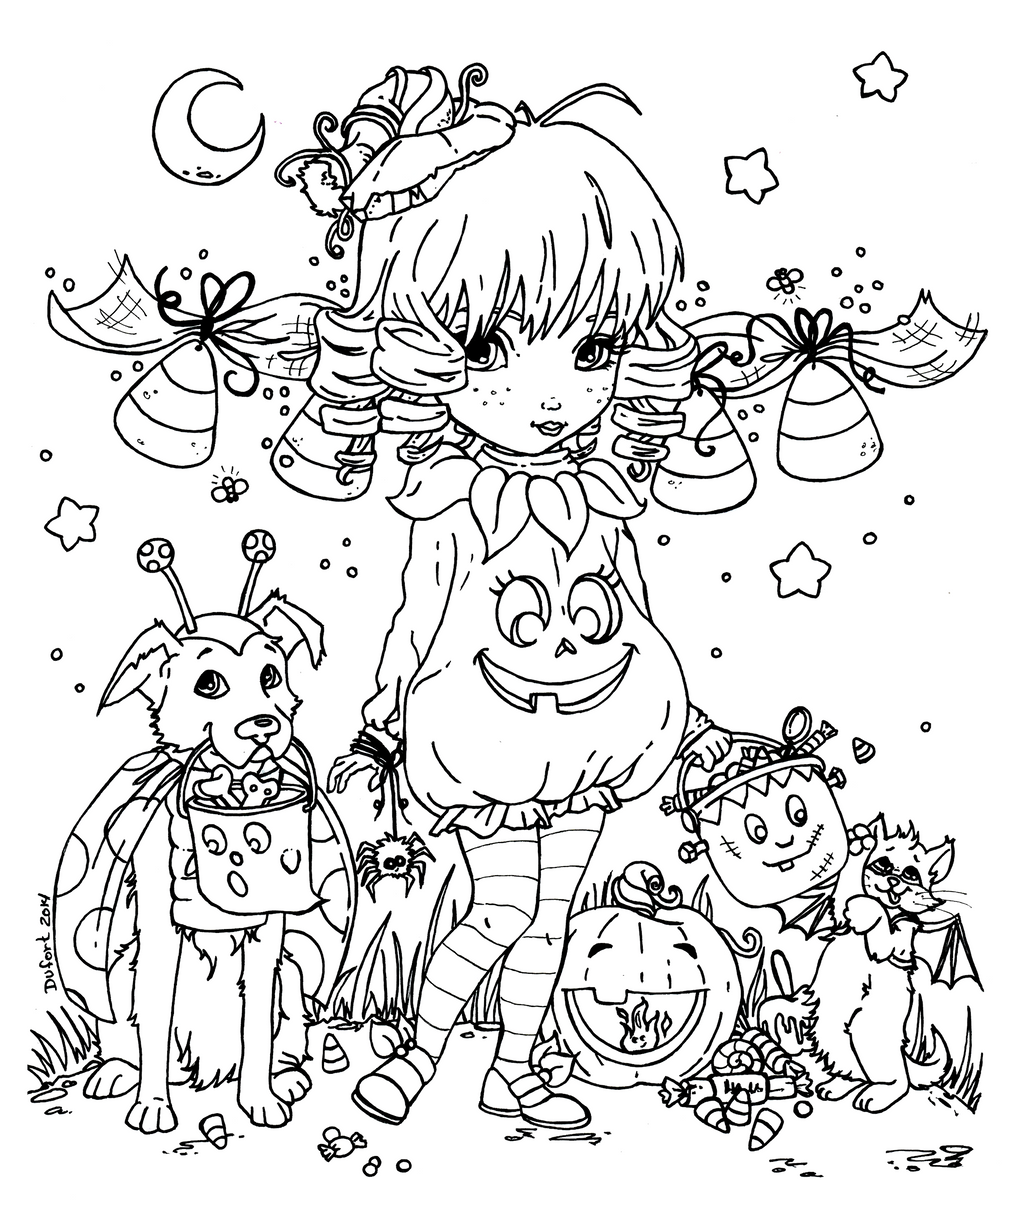 halloween coloring book for adults 2014 halloween cutie pie by jadedragonne on deviantart